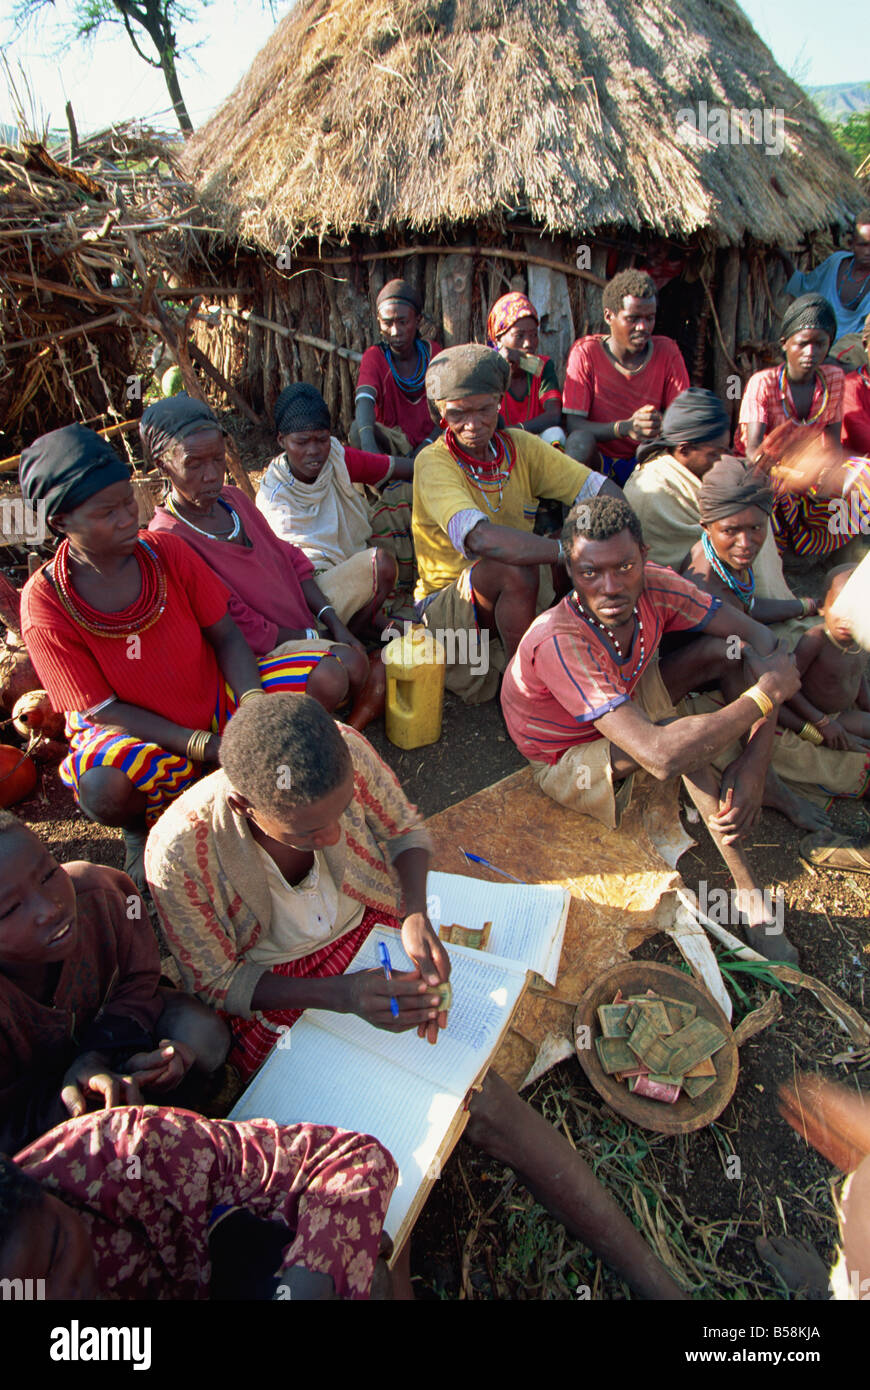 Cooperative collection of funds, Konso, Ethiopia, Africa - Stock Image